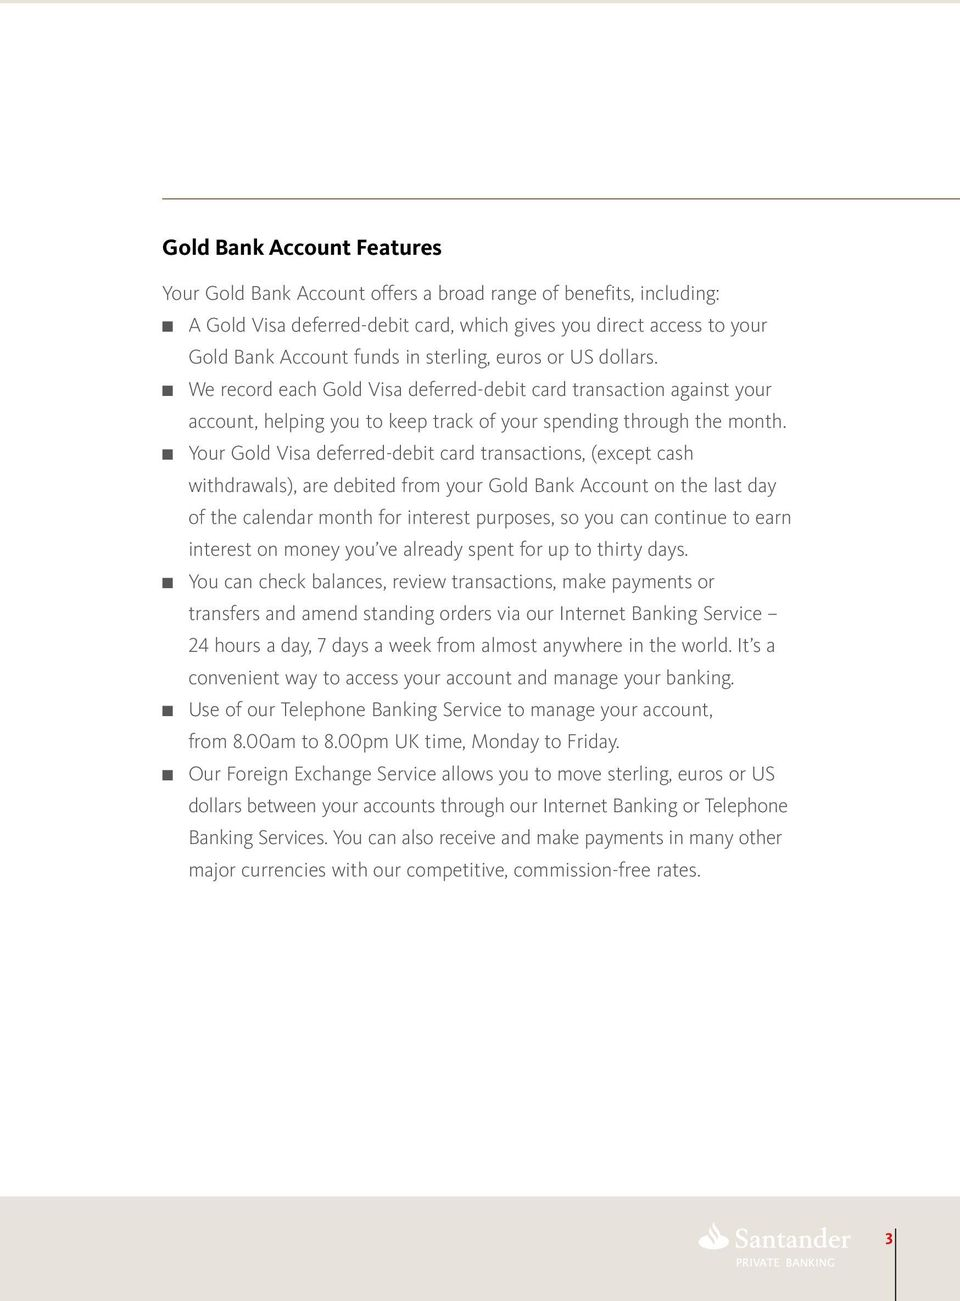 n Your Gold Visa deferred-debit card transactions, (except cash withdrawals), are debited from your Gold Bank Account on the last day of the calendar month for interest purposes, so you can continue